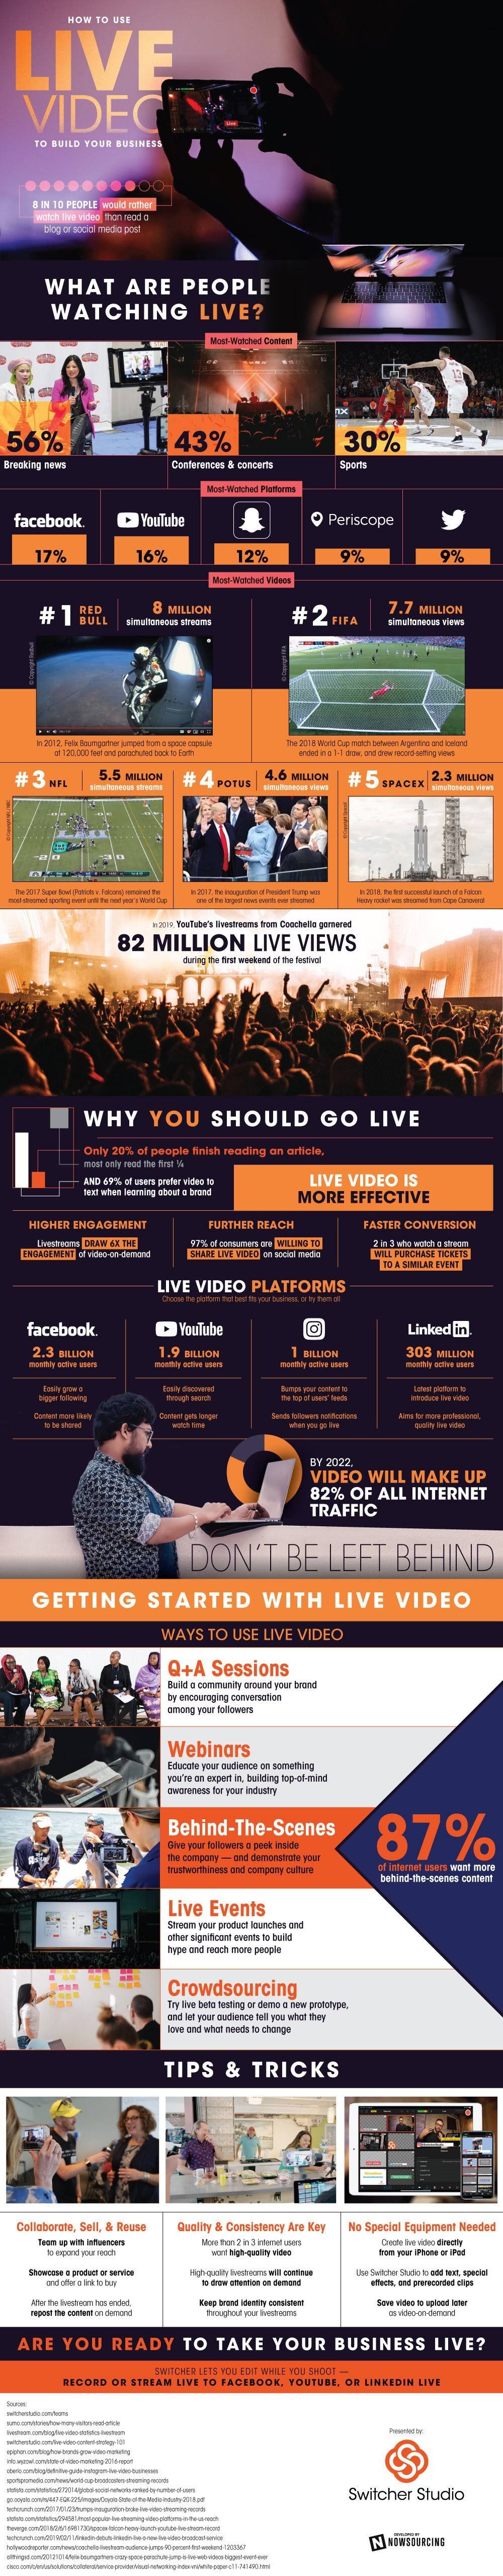 How To Use Live Video To Build Your Business #infographic